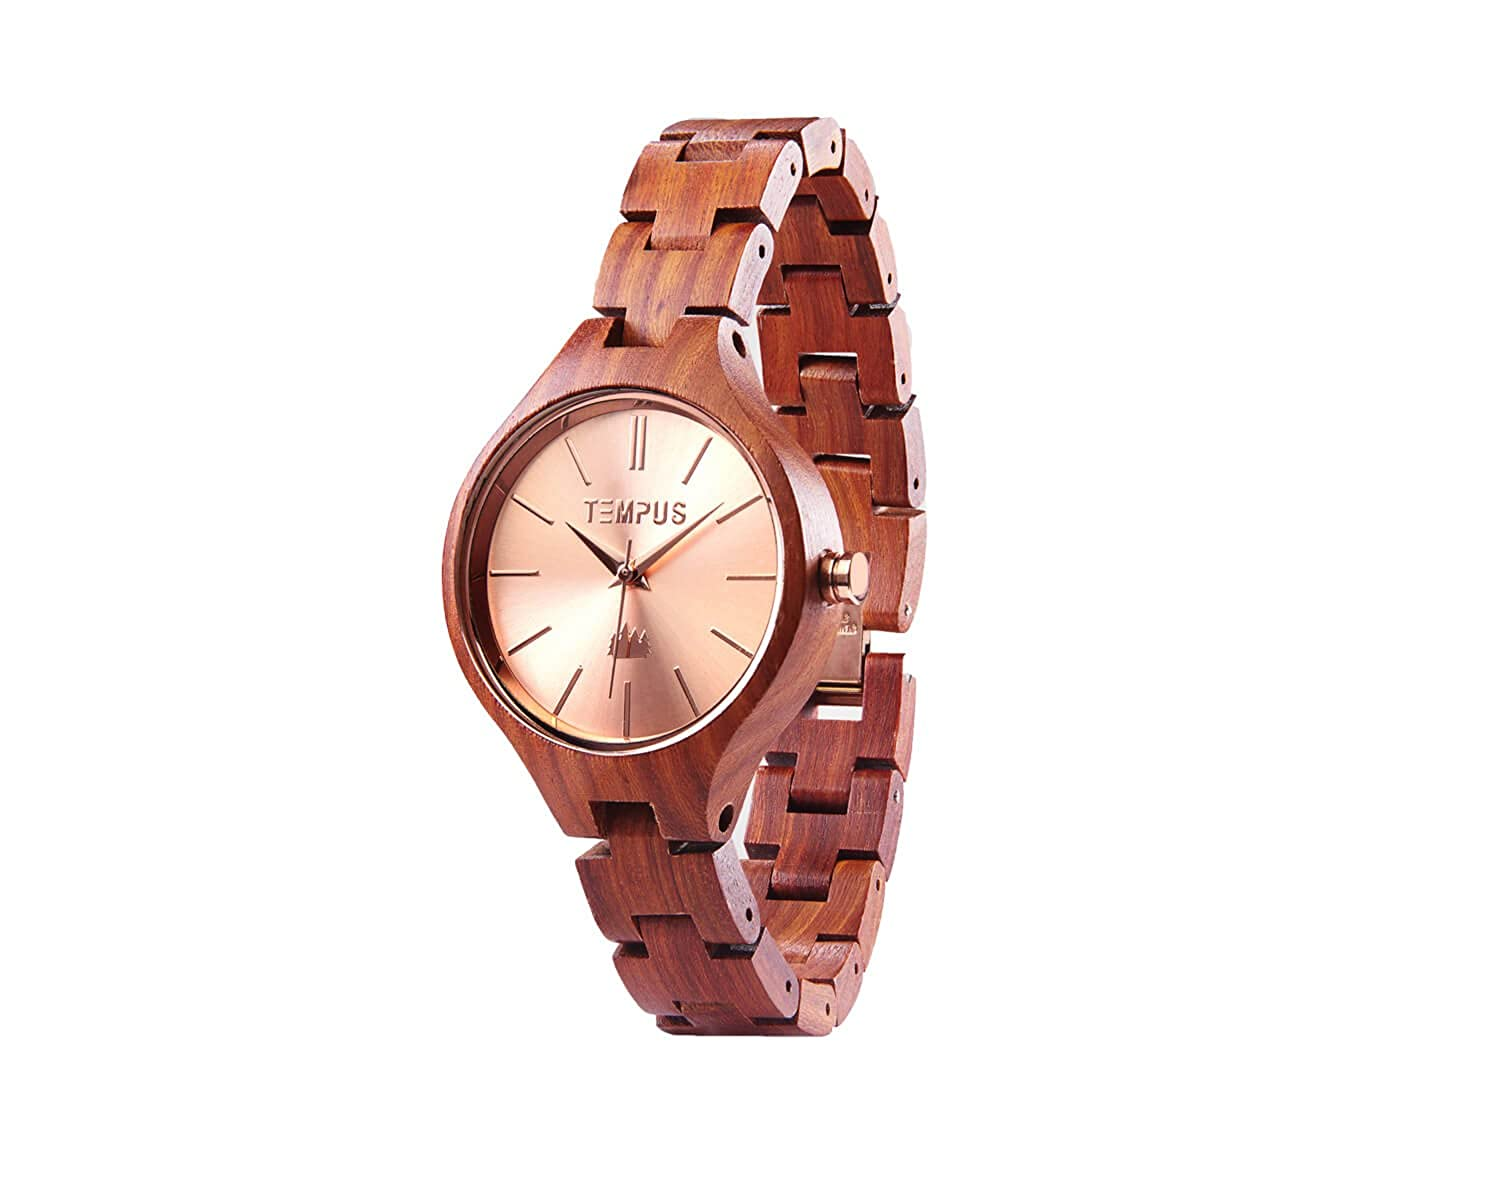 watches download all truwood rj true wood edit collections